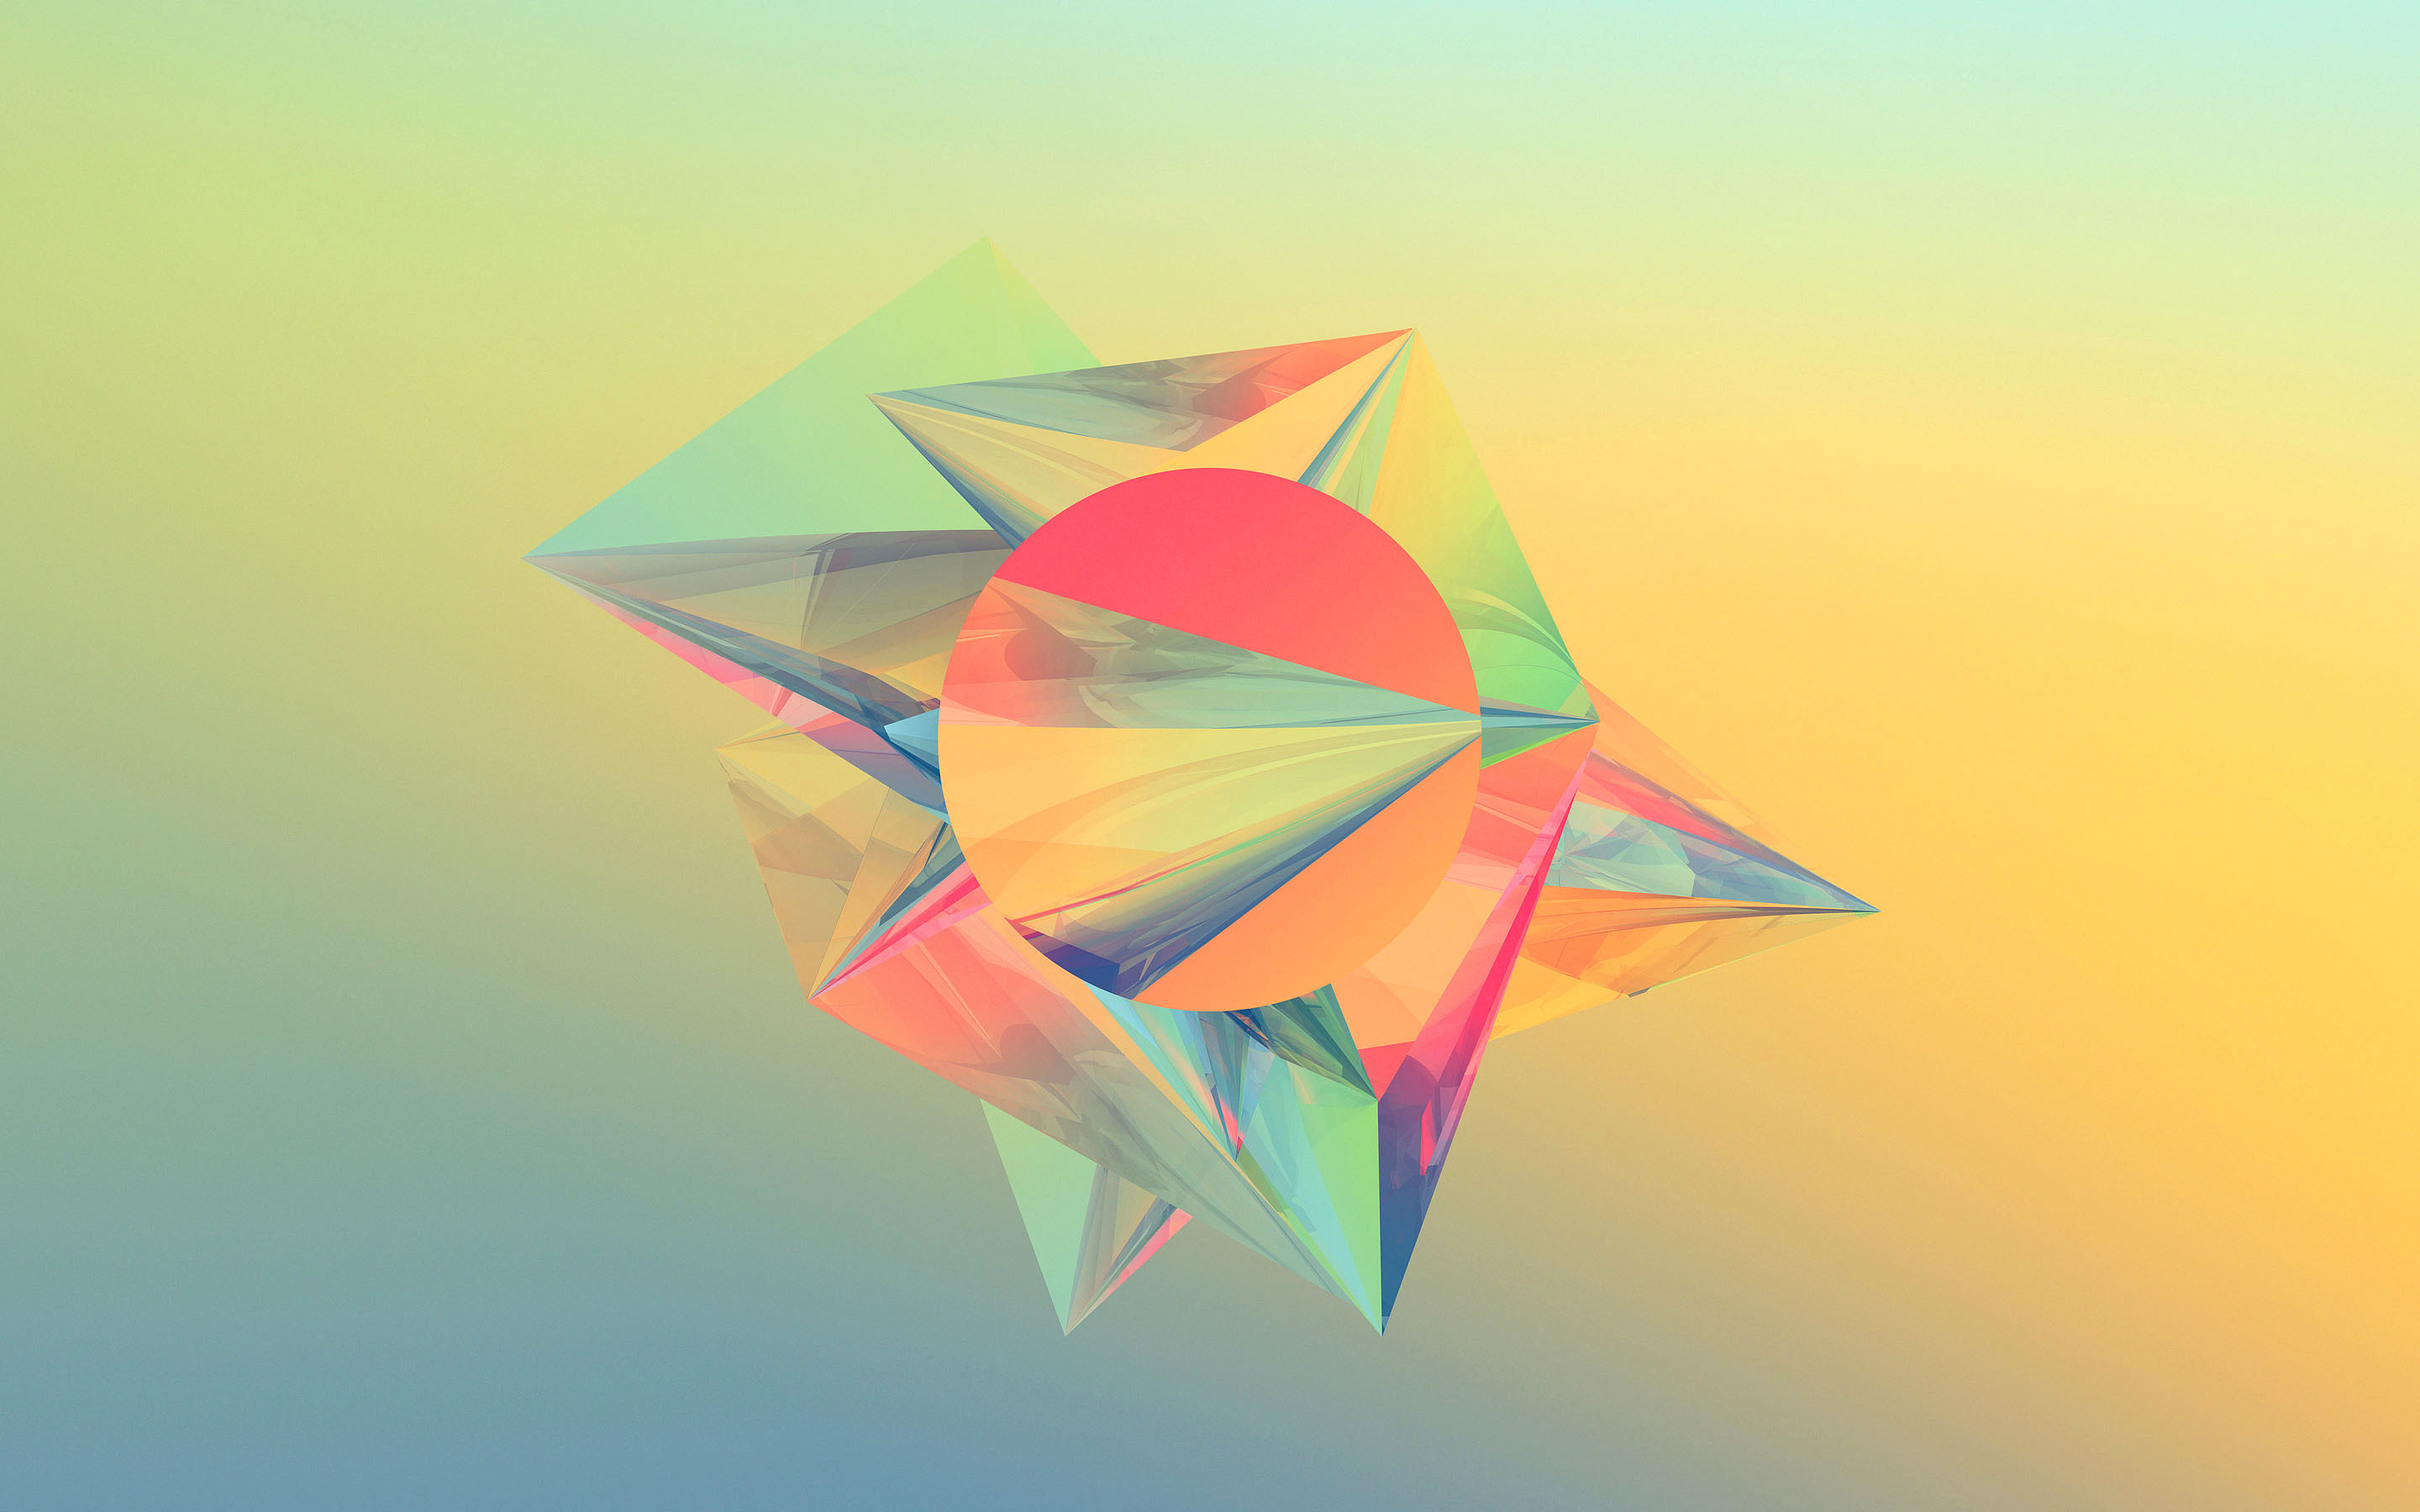 ... abstraction, color, line, shape, geometry, wallpaper